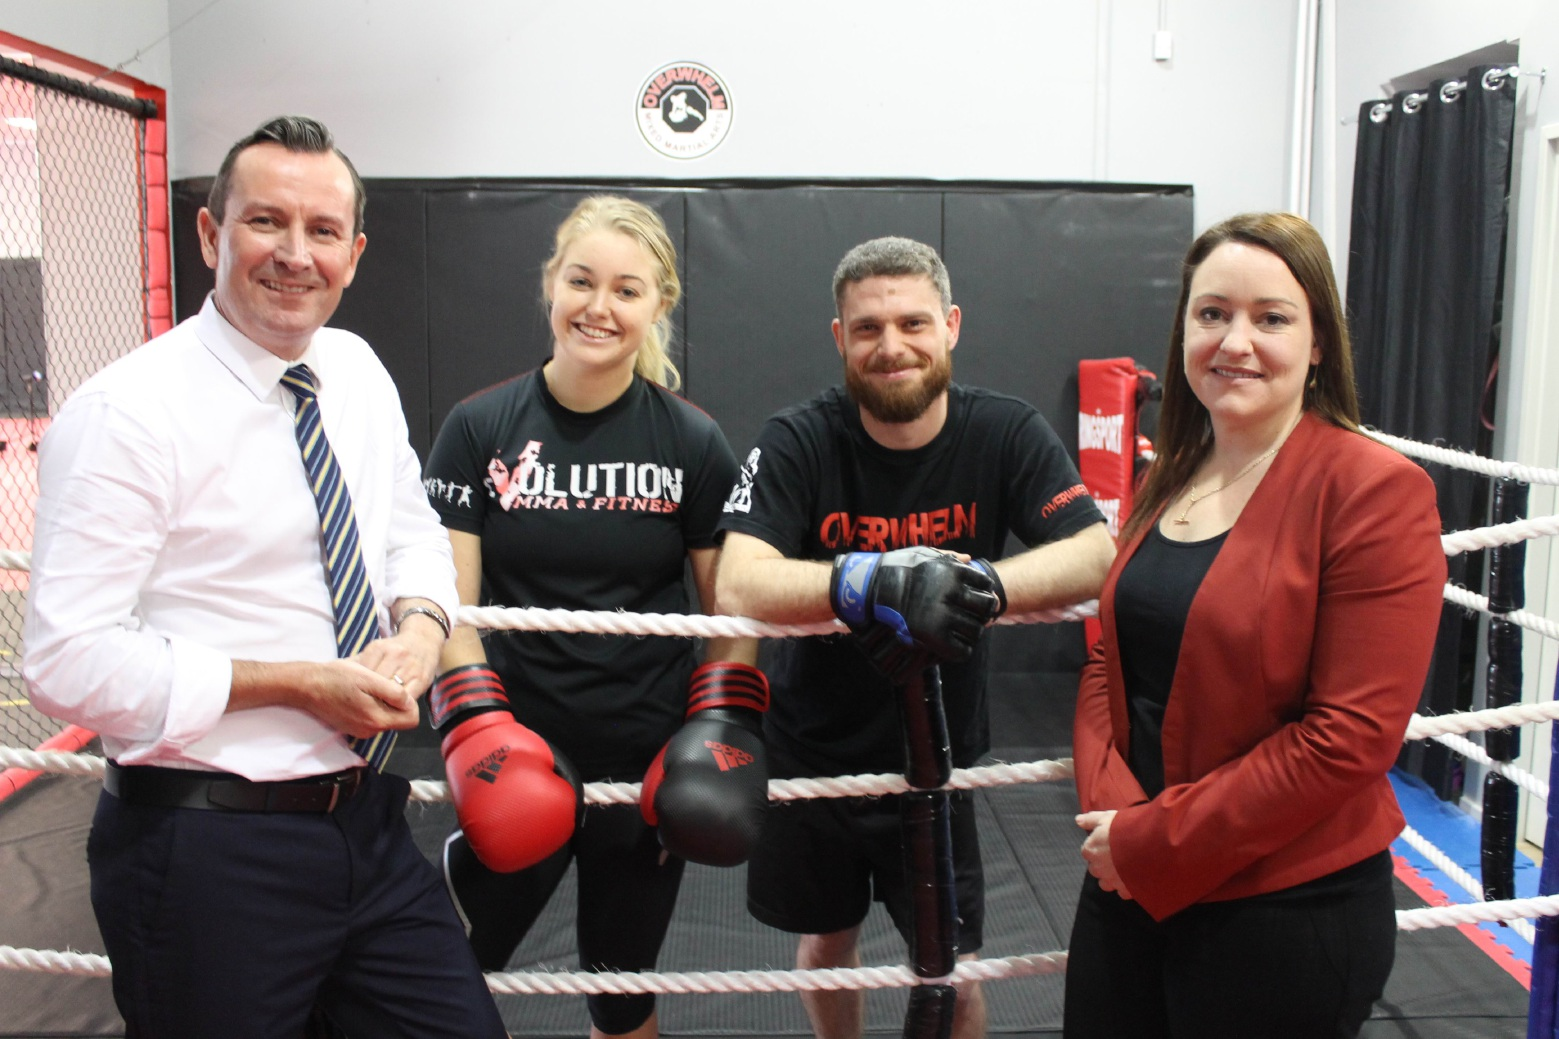 In fighters' corner... Labor Leader Mark McGowan, mixed martial arts exponents Jessica Napier and Ben Wynne, and Joondalup Labor candidate Emily Hamilton.